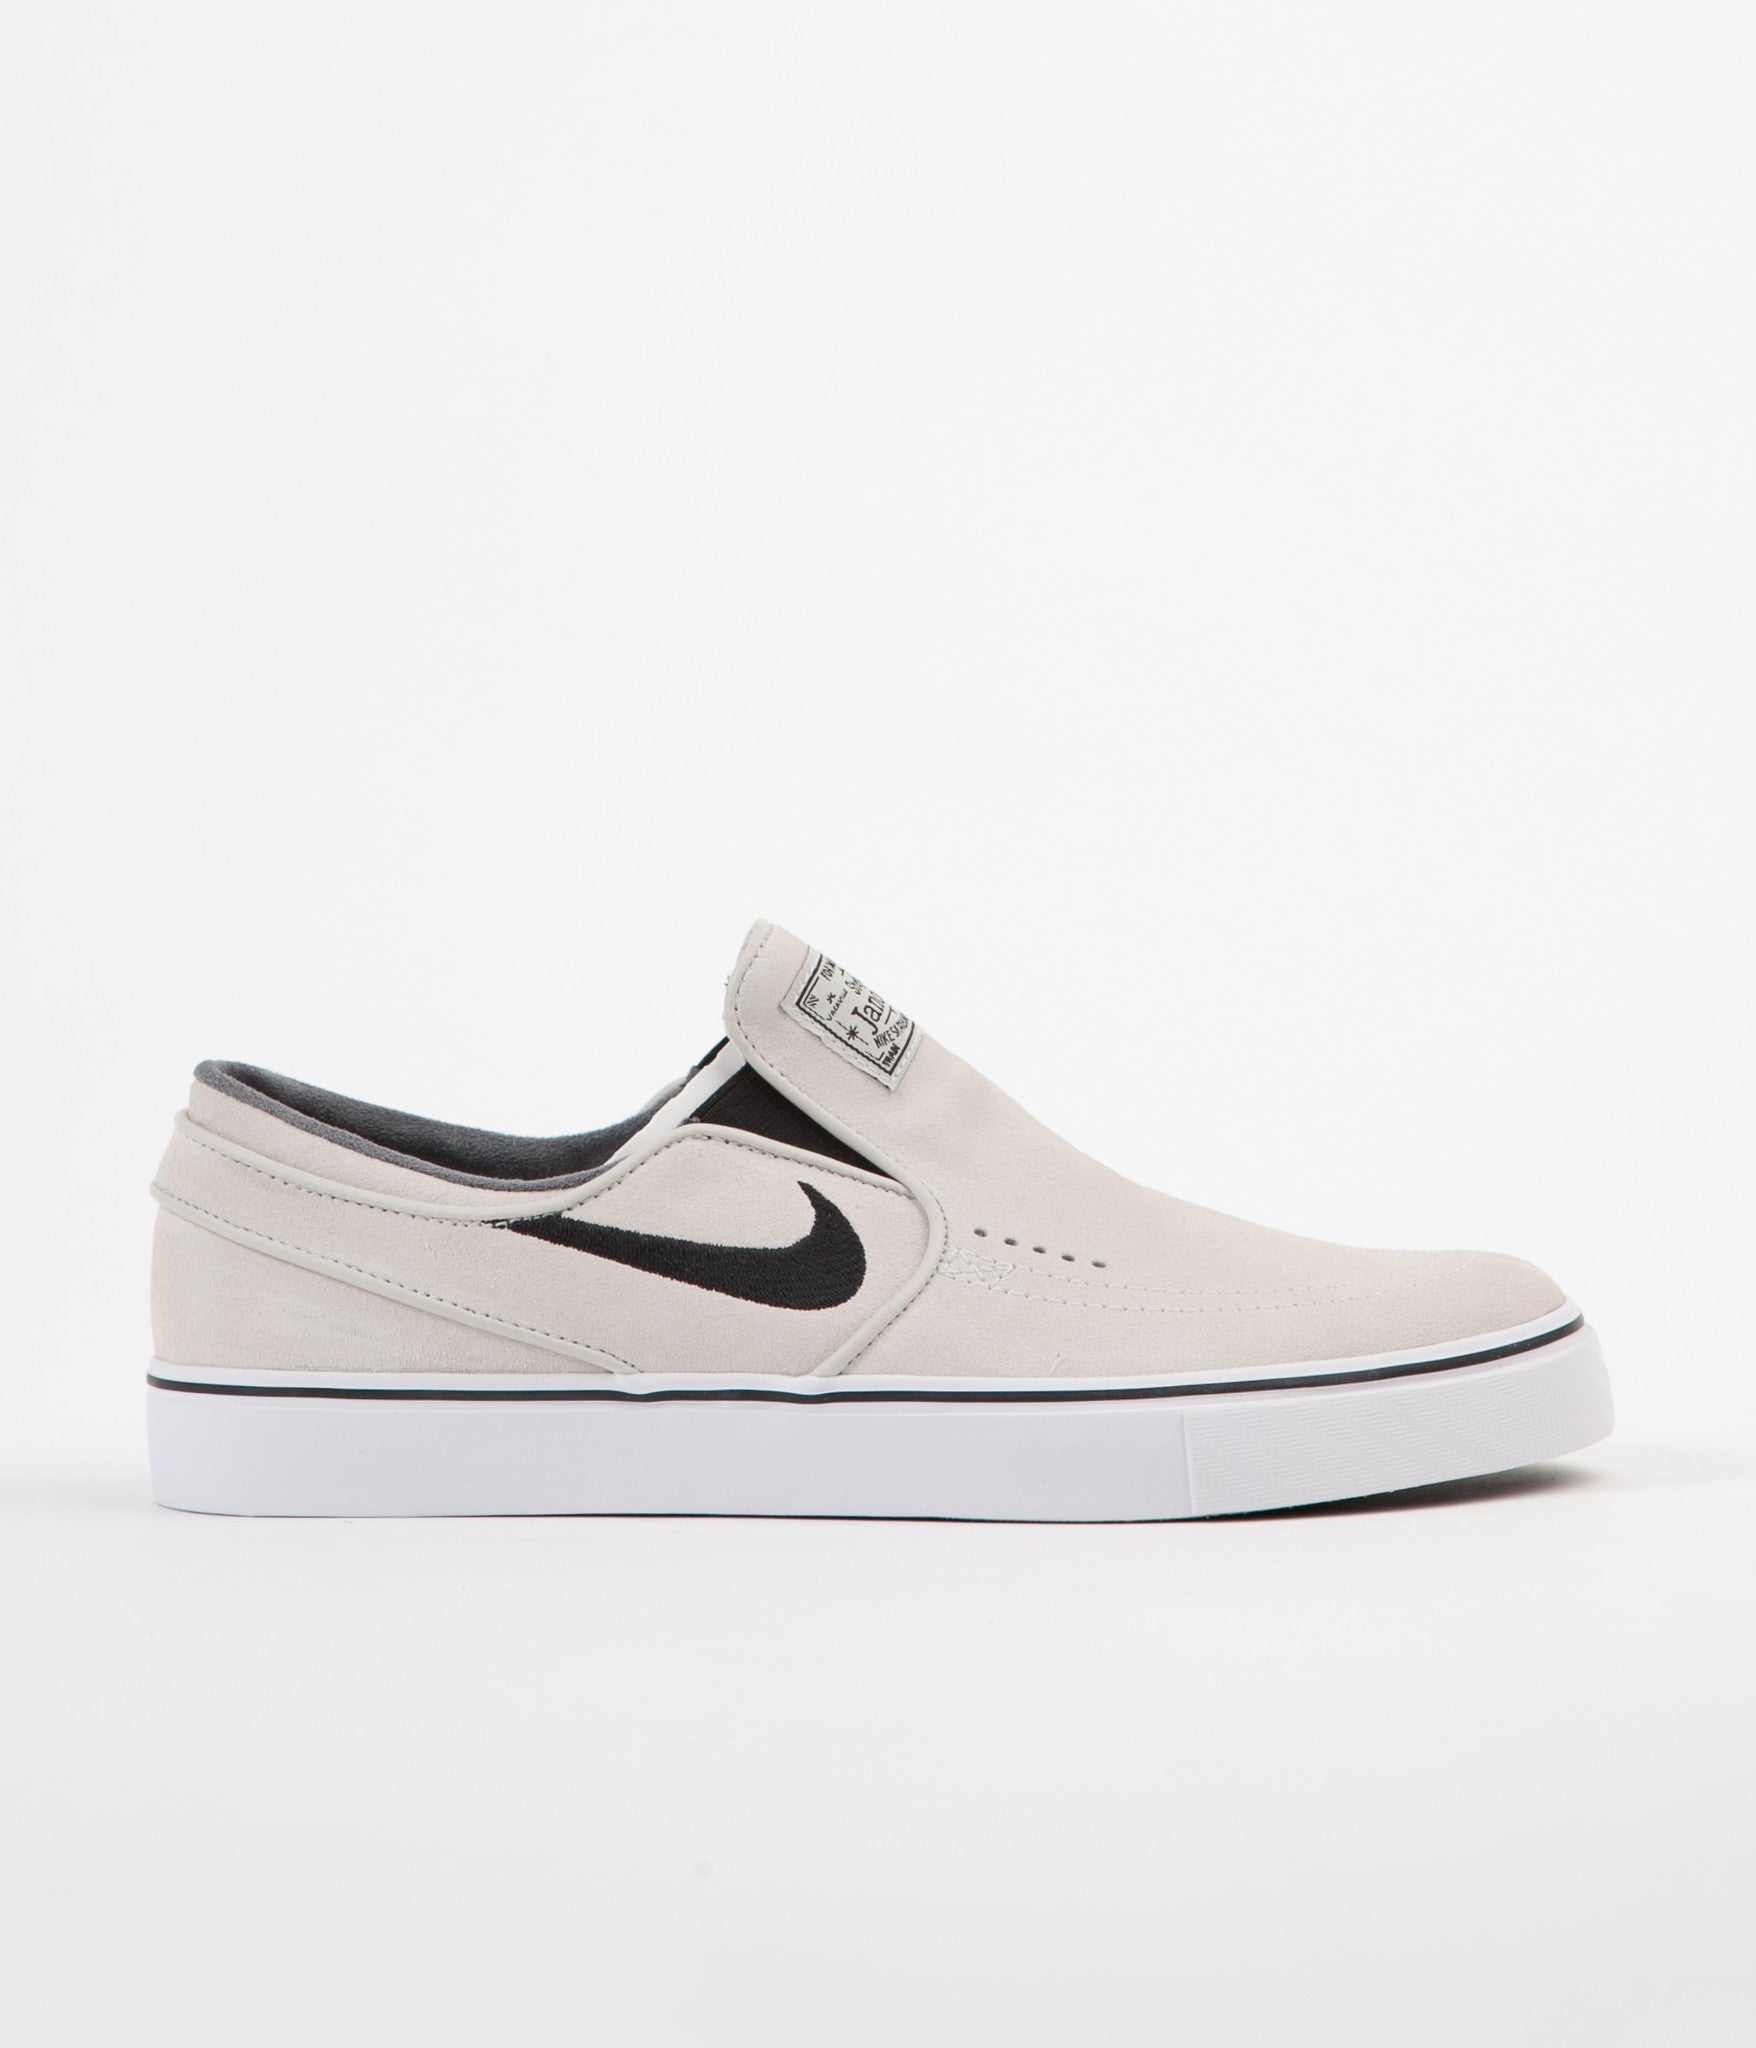 Nike SB Stefan Janoski Slip On Shoes - Light Bone / Black - White - Black